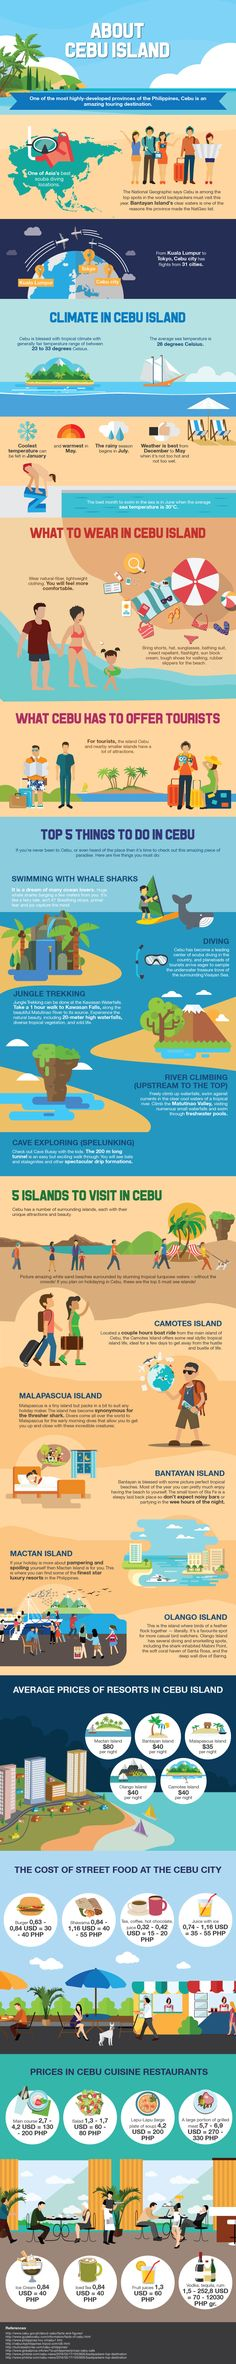 Travel and Trip infographic Reasons To Visit Cebu Island . Infographic Description Reasons To Visit Cebu Island More - Infographic Source Bohol, Palawan, Siargao, Voyage Philippines, Philippines Cebu, Philippines Beaches, Philippines Travel Guide, Tourist Places, Places To Travel